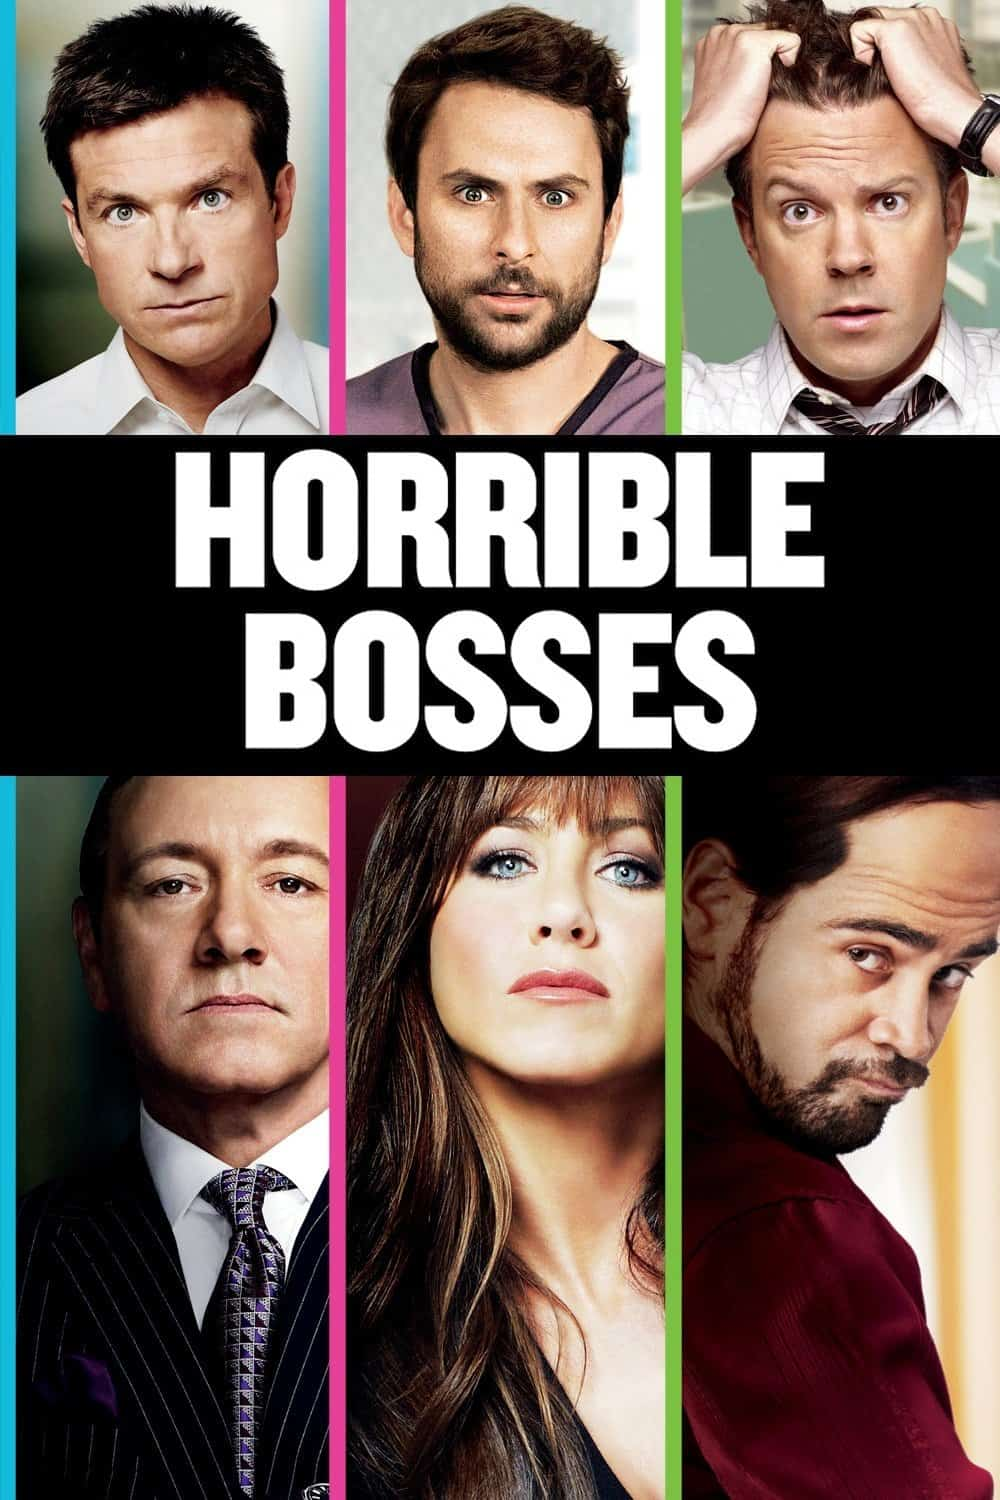 Horrible Bosses, 2011